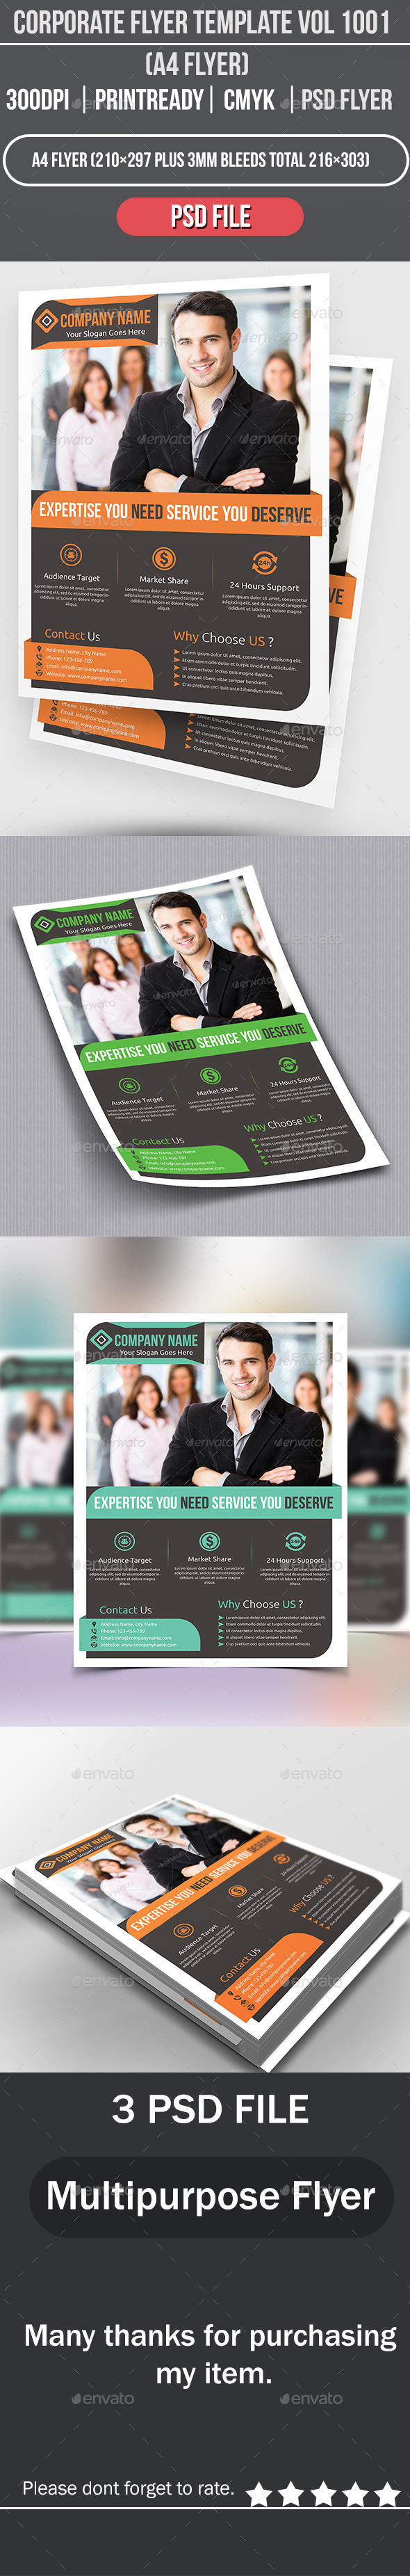 GraphicRiver Corporate Flyer Template Vol 1001 8815785